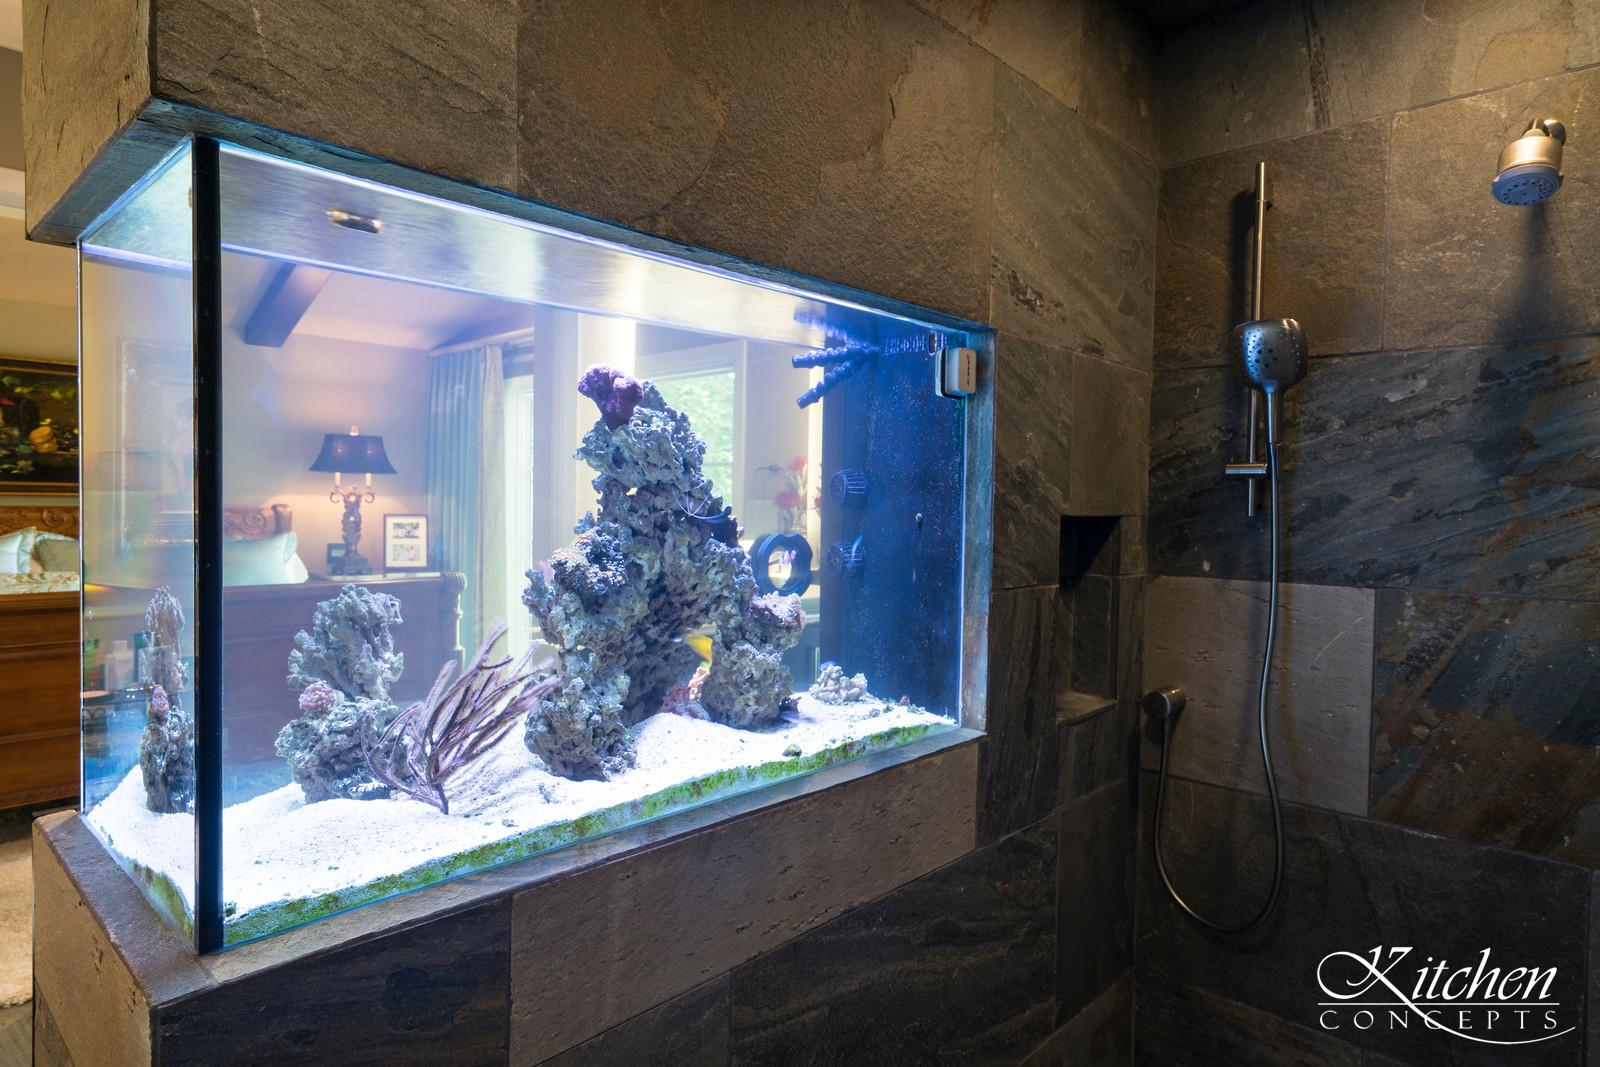 Organic Transitional Sophisticated Master Bathroom – Waterfall and Saltwater Fish Tank